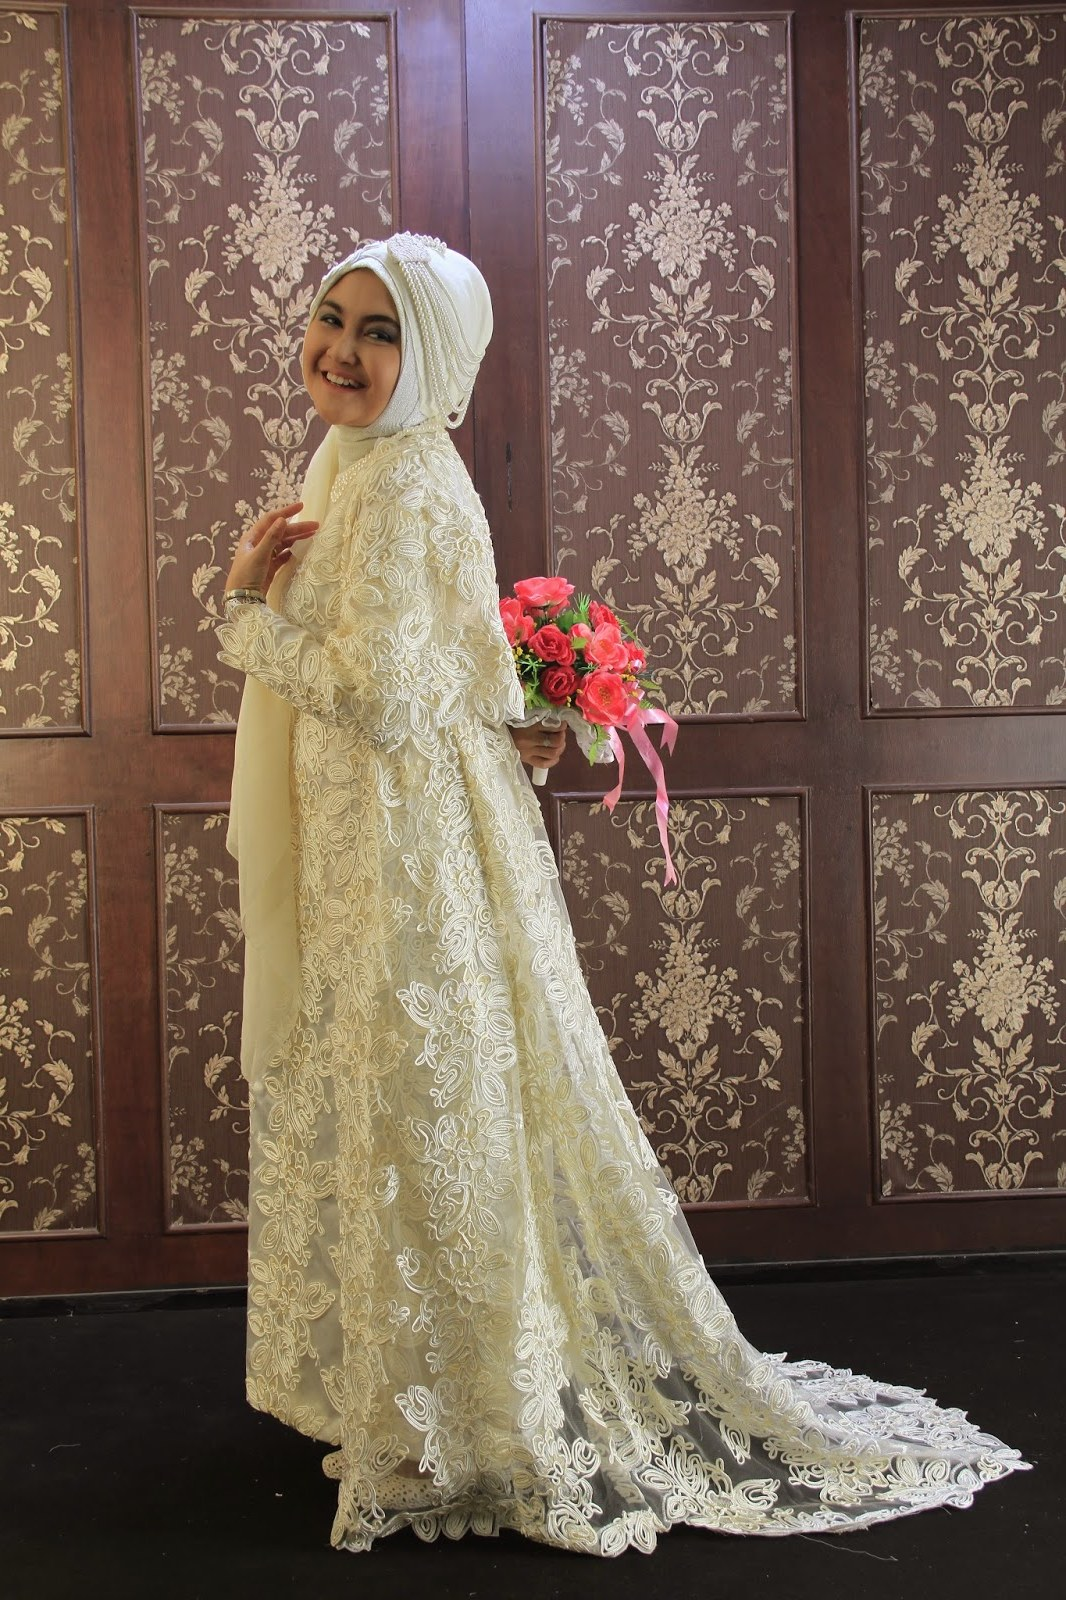 Ide Baju Pengantin Muslimah Qwdq Padme Wedding Dress Replica – Fashion Dresses